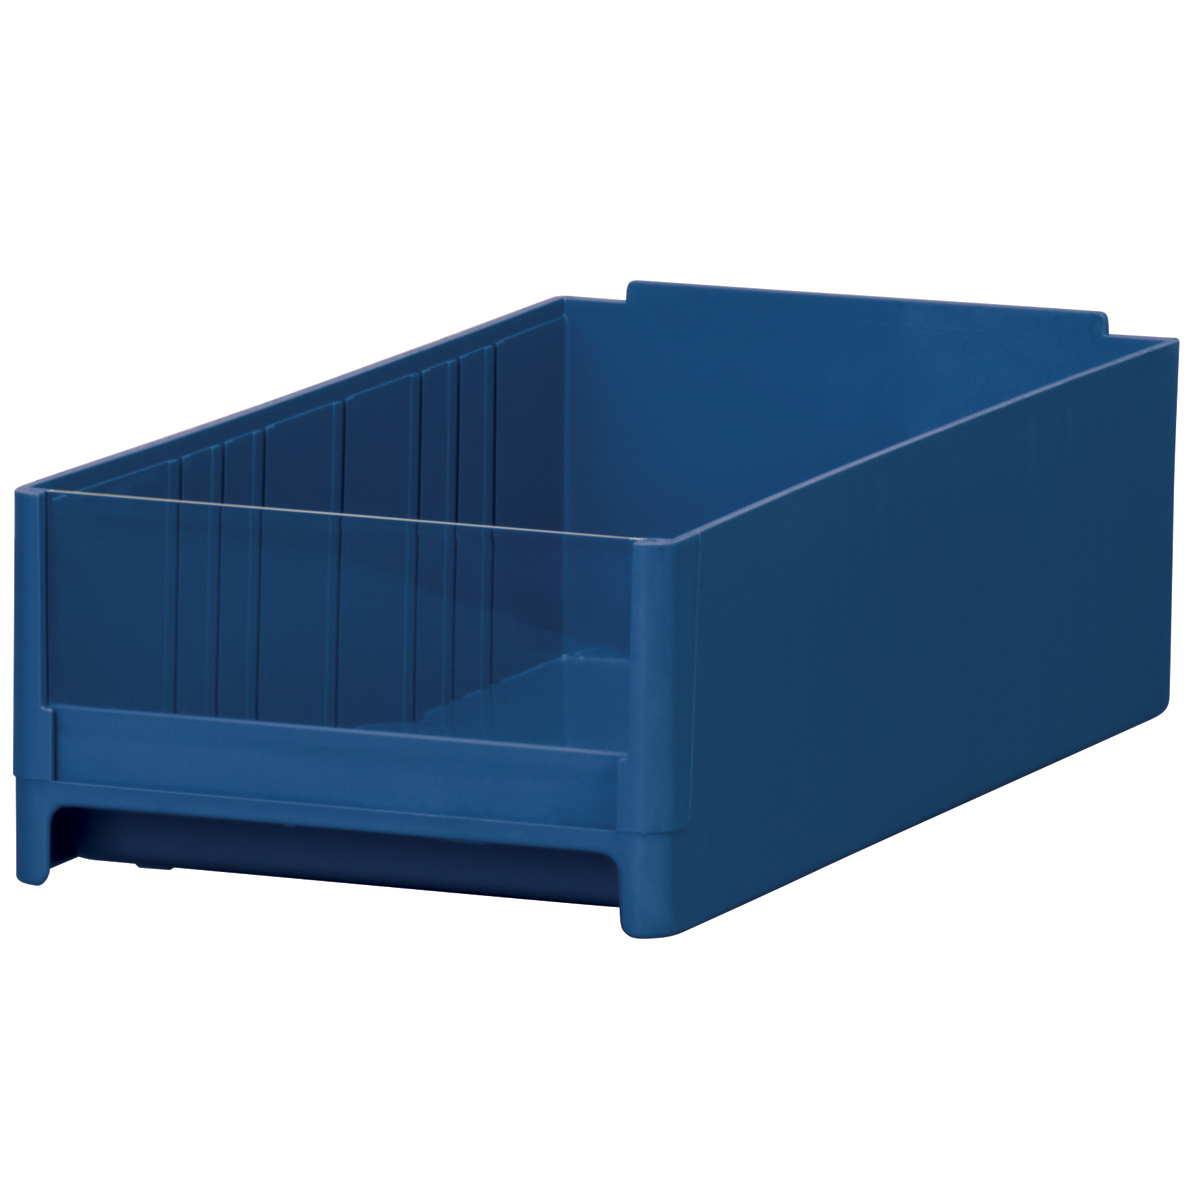 19-Series Cabinet Drawer 5-3/16 x 3-1/16 x 10-9/16, Blue.  This item sold in carton quantities of 15.